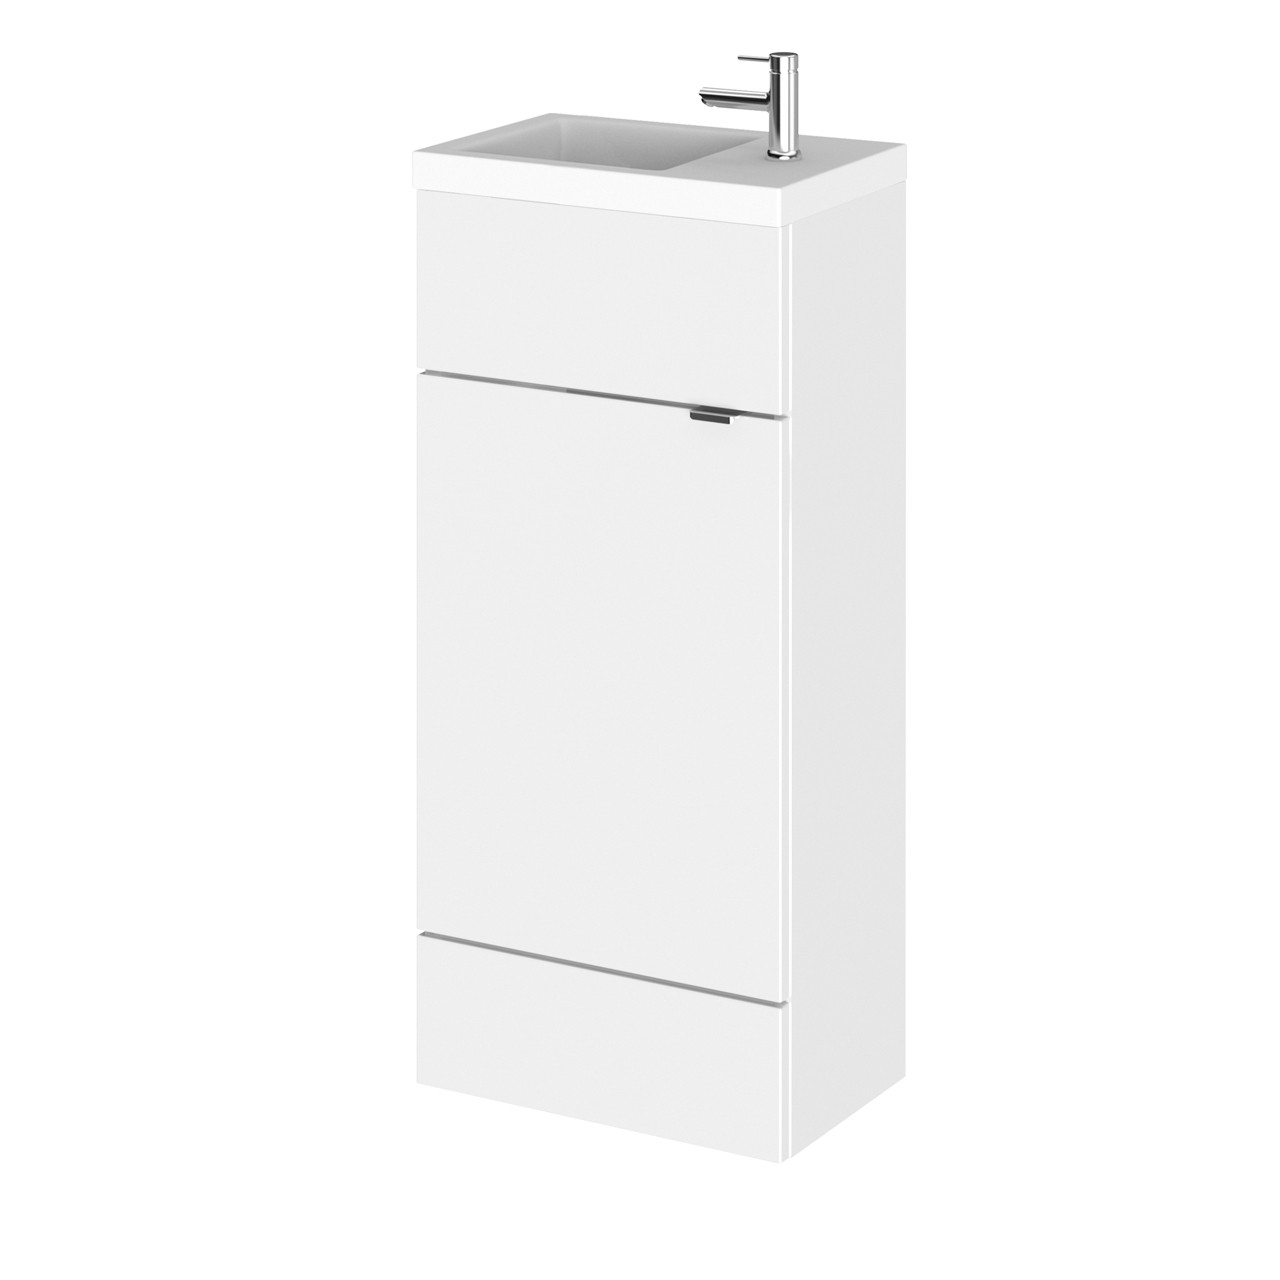 Hudson Reed Gloss White 400mm Compact Vanity Unit with Basin - CBI121